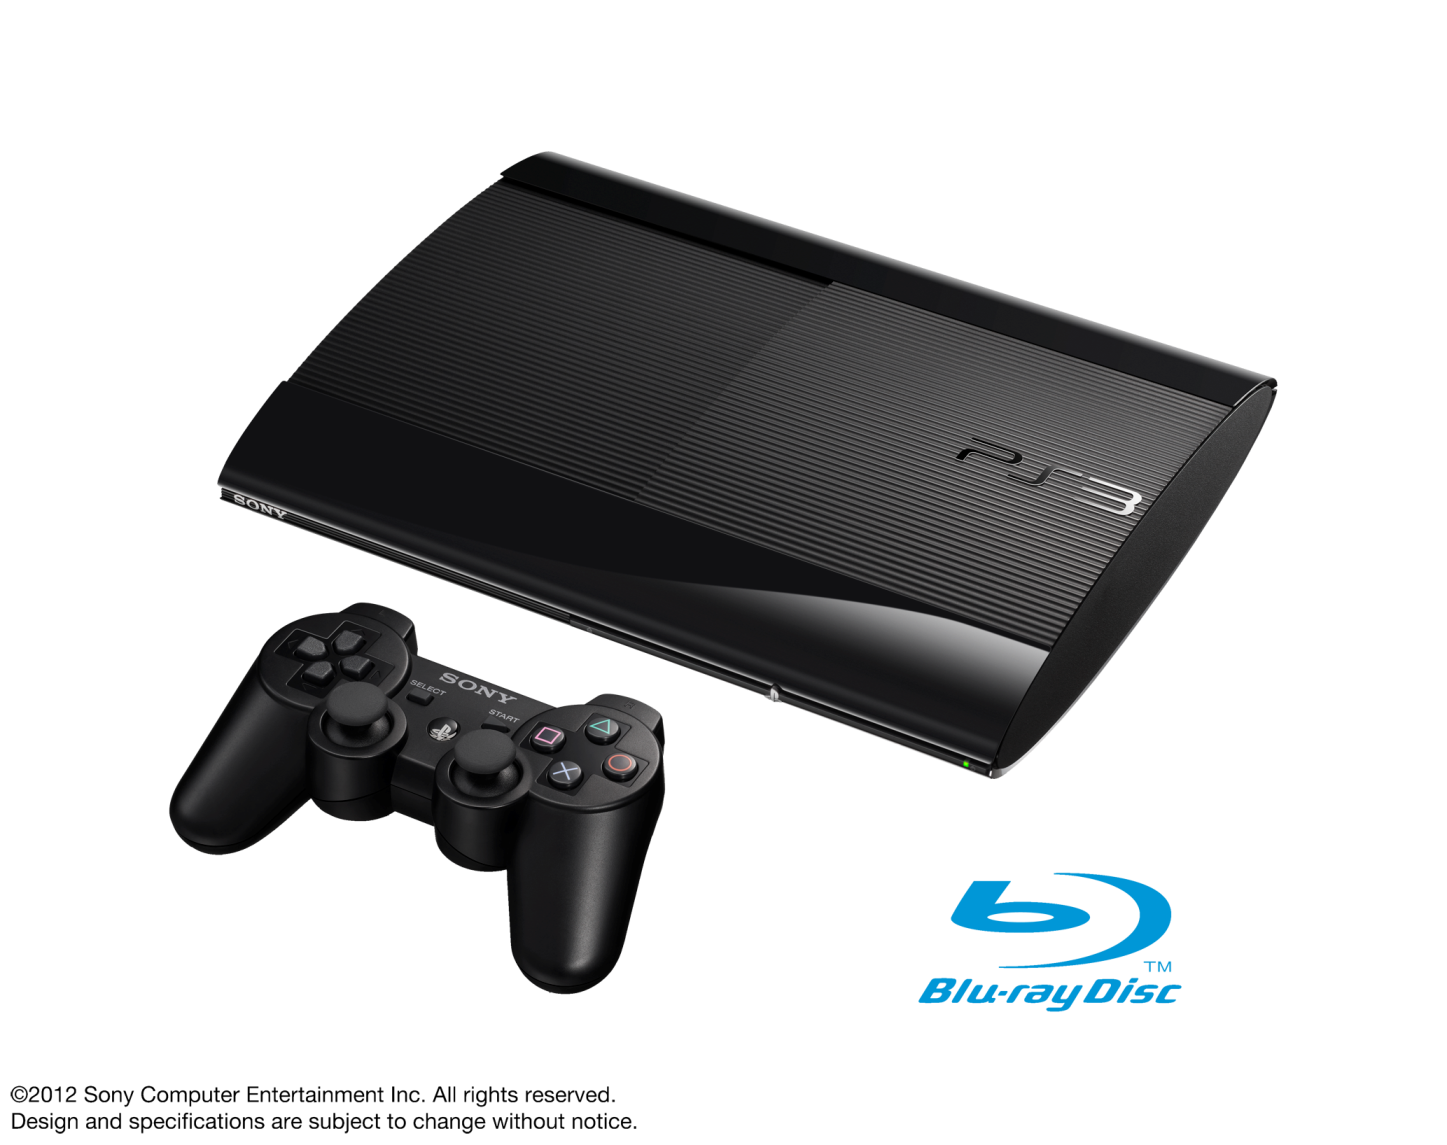 New PS3 announced